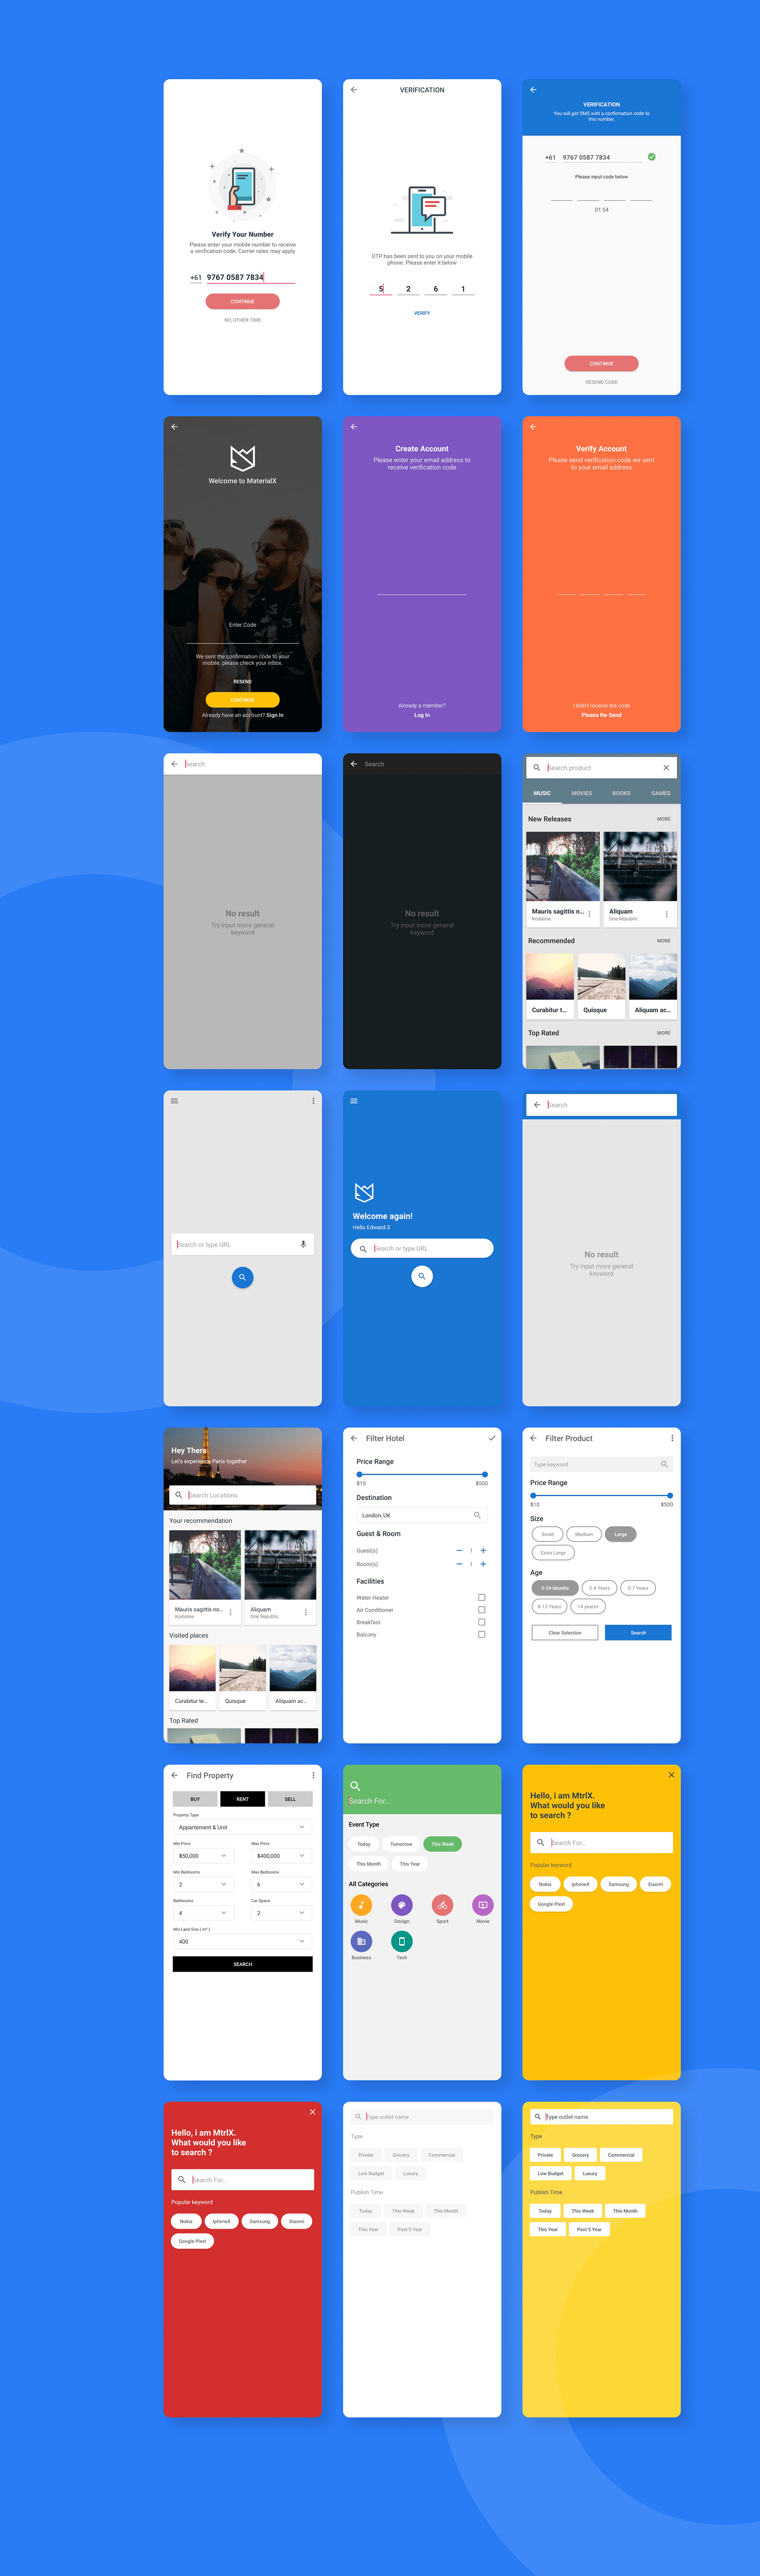 MaterialX - Android Material Design UI Components 2.7 - 30